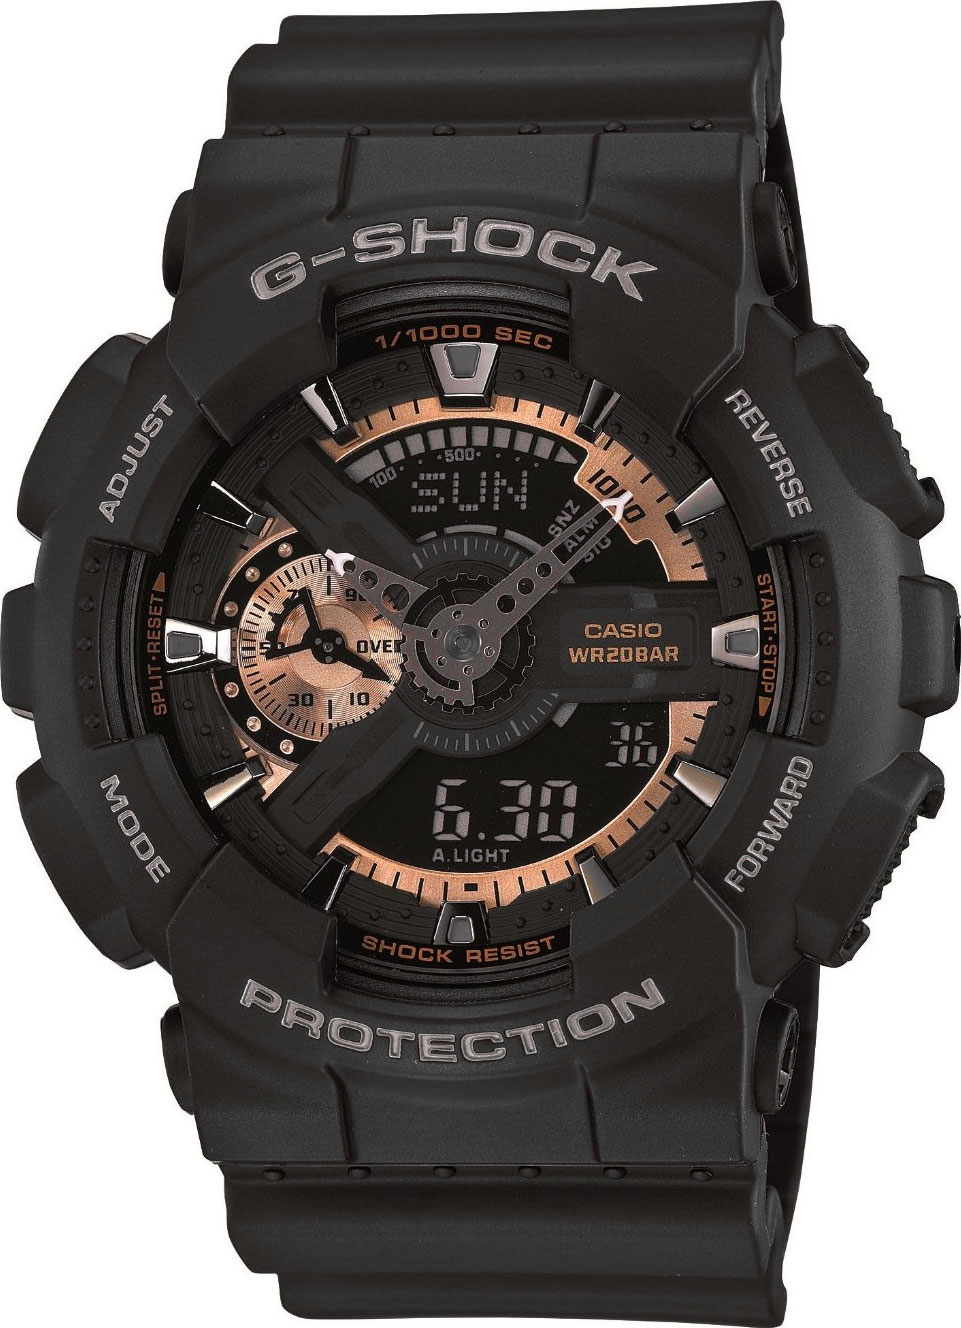 Casio G-shock GA-110RG-1A тушь для ресниц max factor false lash effect epic mascara 01 цвет 01 black variant hex name 000000 вес 20 00